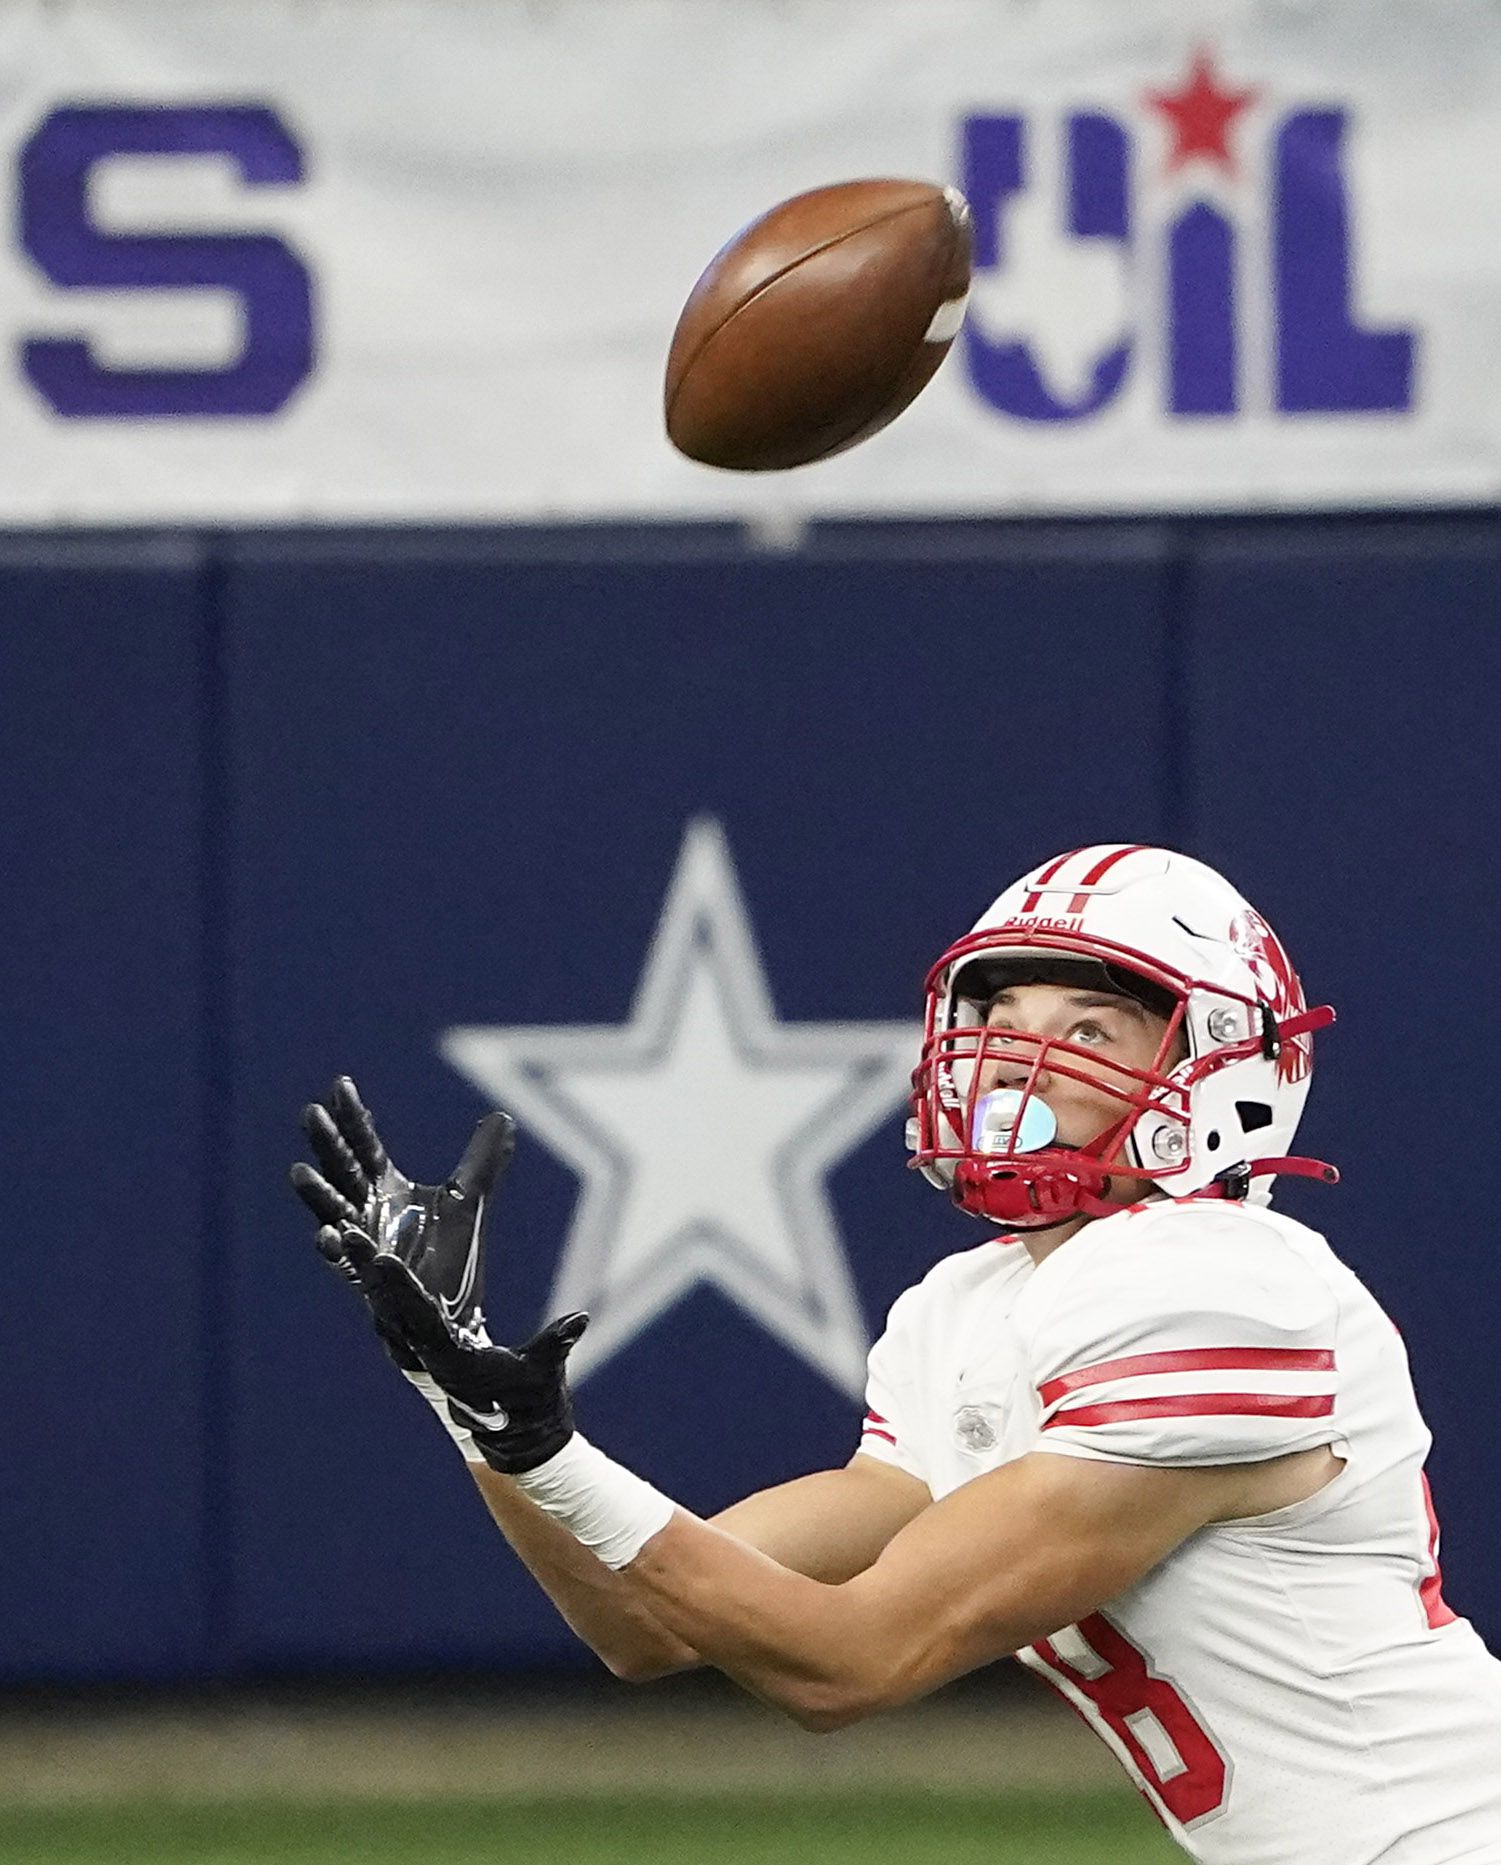 Katy wide receiver Taylor Saulsberry hauls in a  37-yard touchdown pass during the first half of the Class 6A Division II state football championship game against Cedar Hill at AT&T Stadium on Saturday, Jan. 16, 2021, in Arlington, Texas.